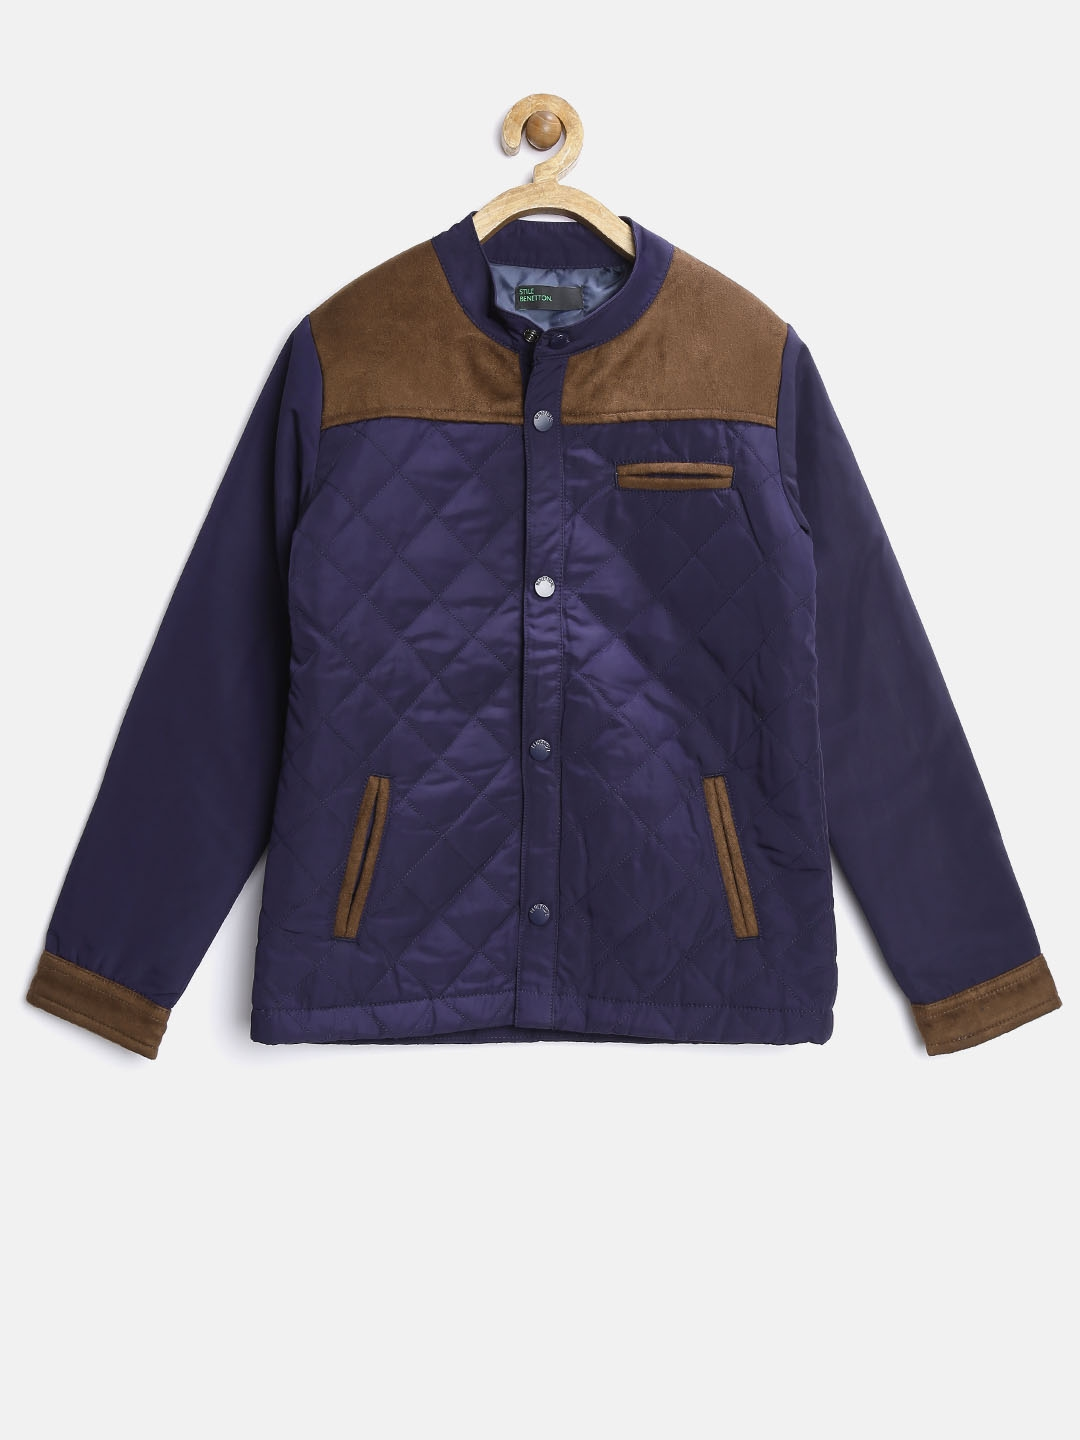 7c18bc06e7db Buy United Colors Of Benetton Boys Navy Quilted Jacket - Jackets for ...